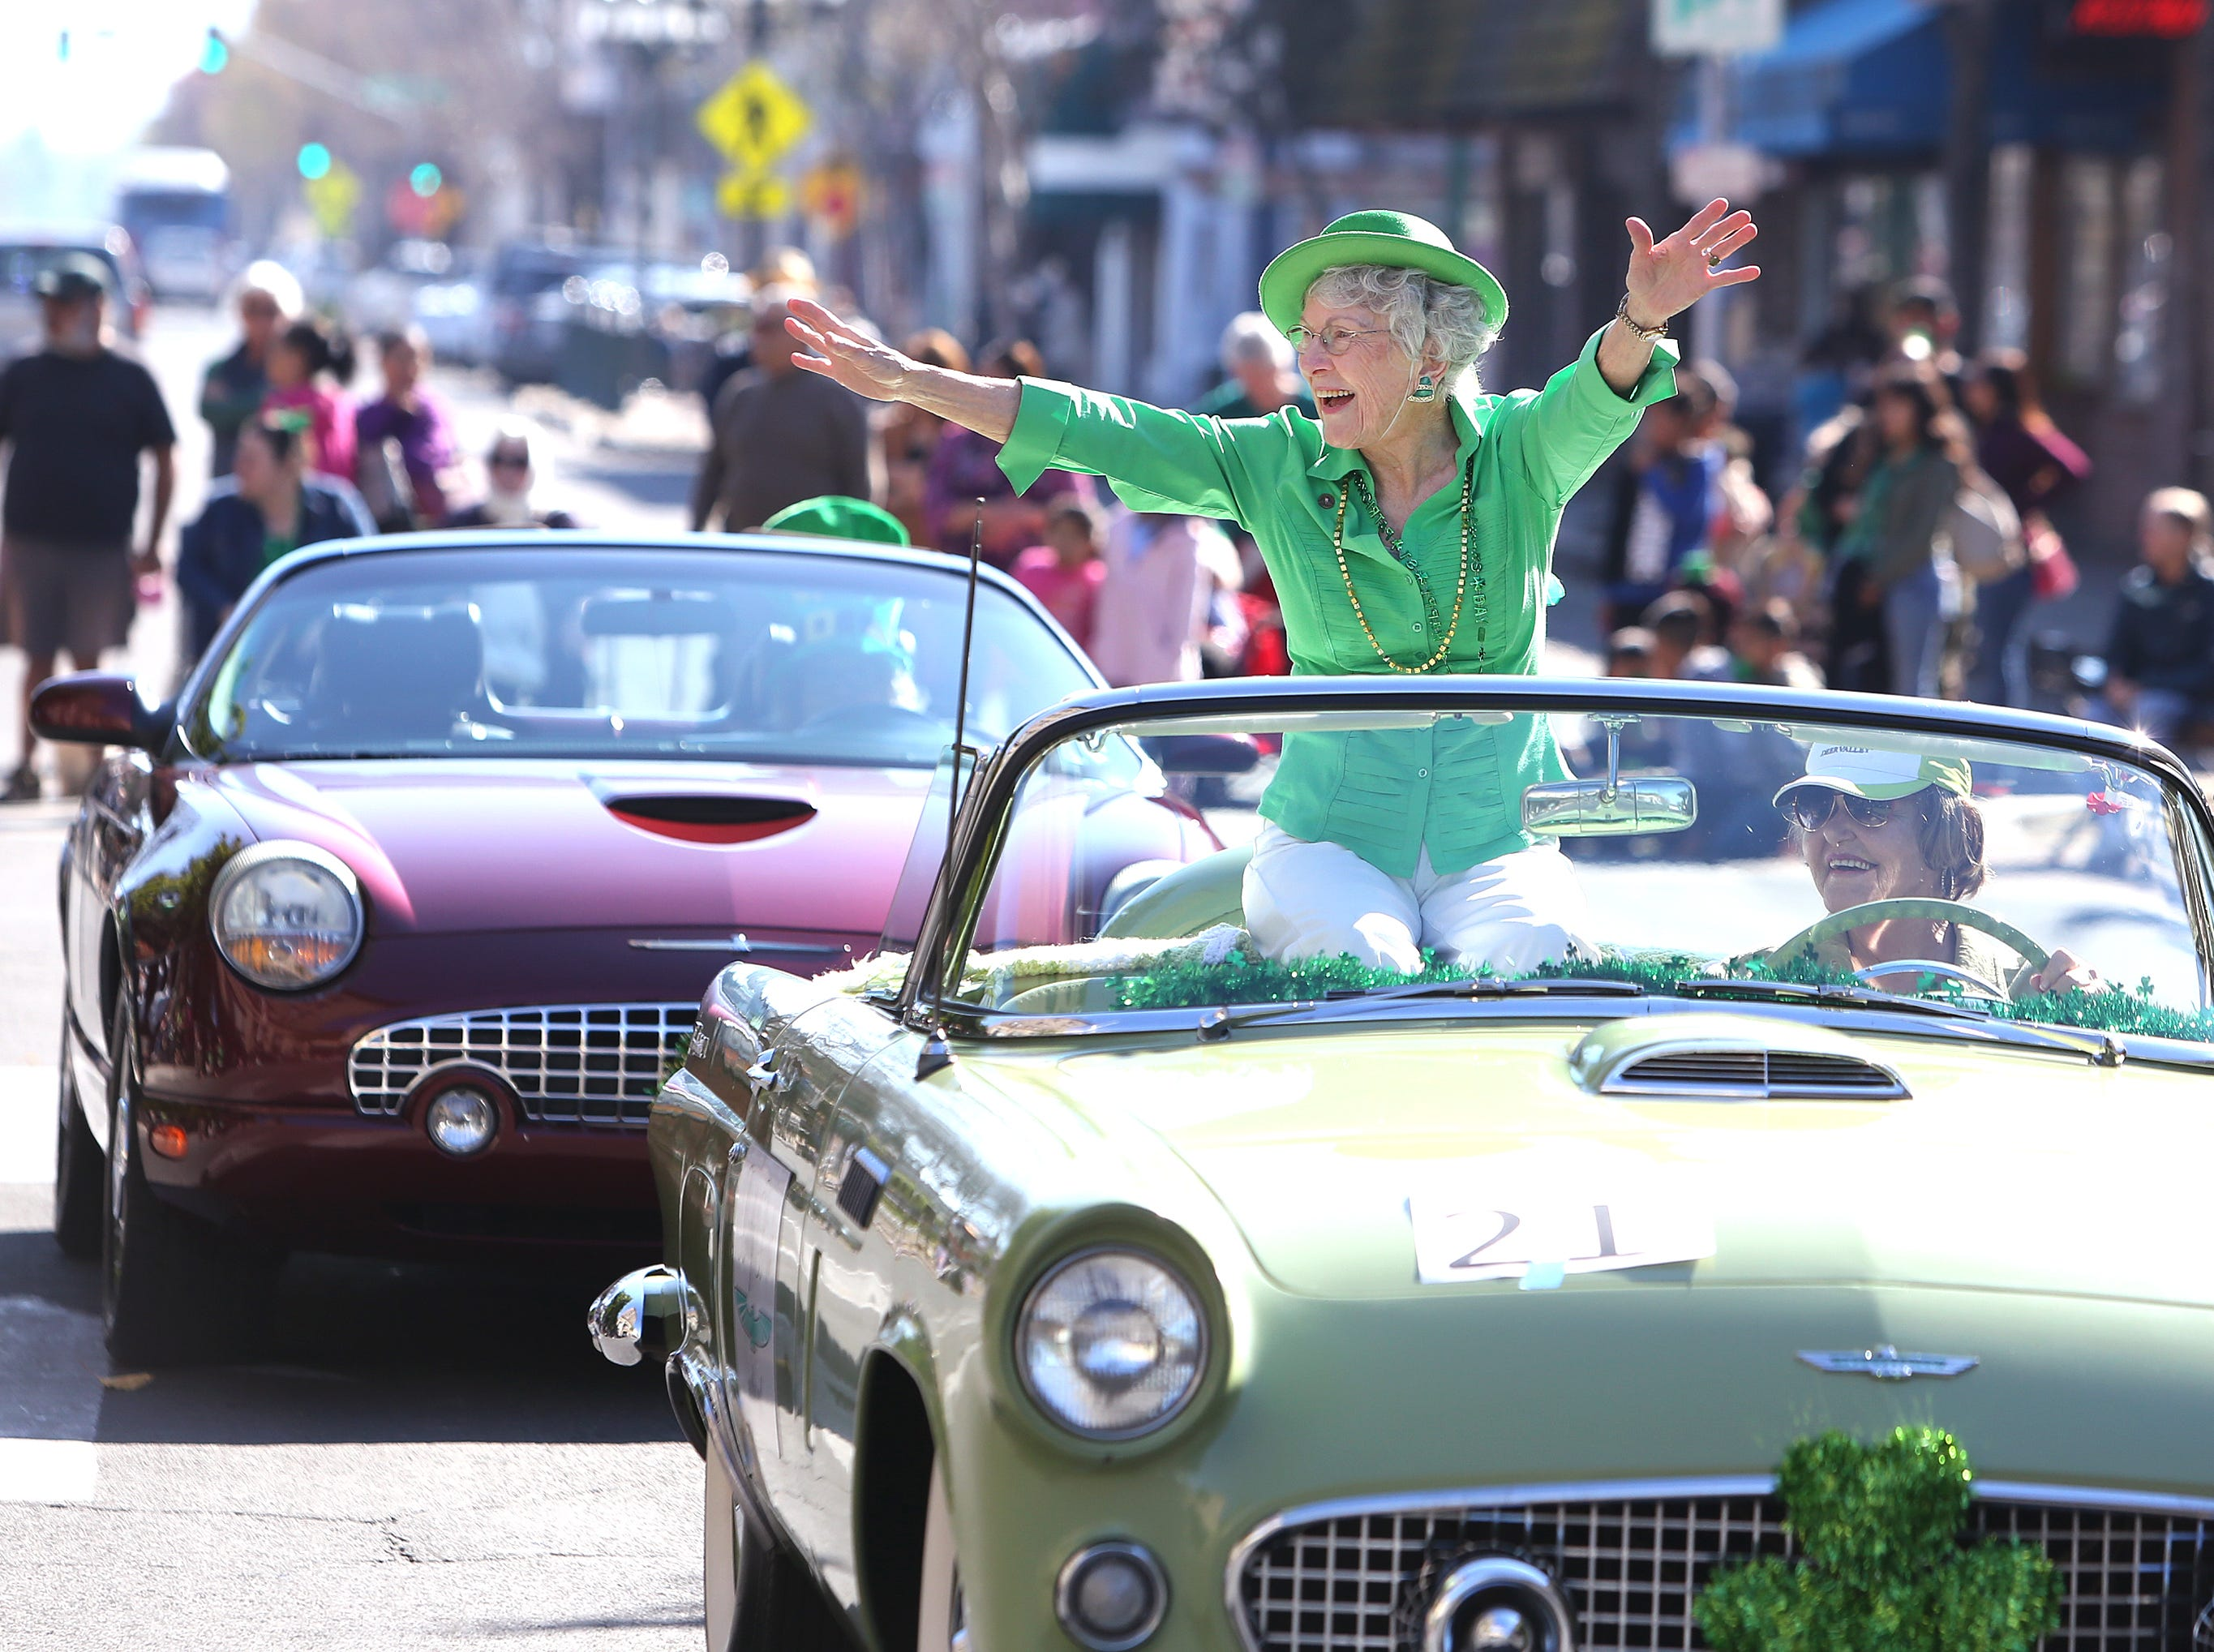 JoAnn Miller from Valley Children's Hospital waves to the large crowds watching this year's St. Patrick's Day parade rolling through Main Street Saturday, March 16, 2019 in Visalia, Calif.